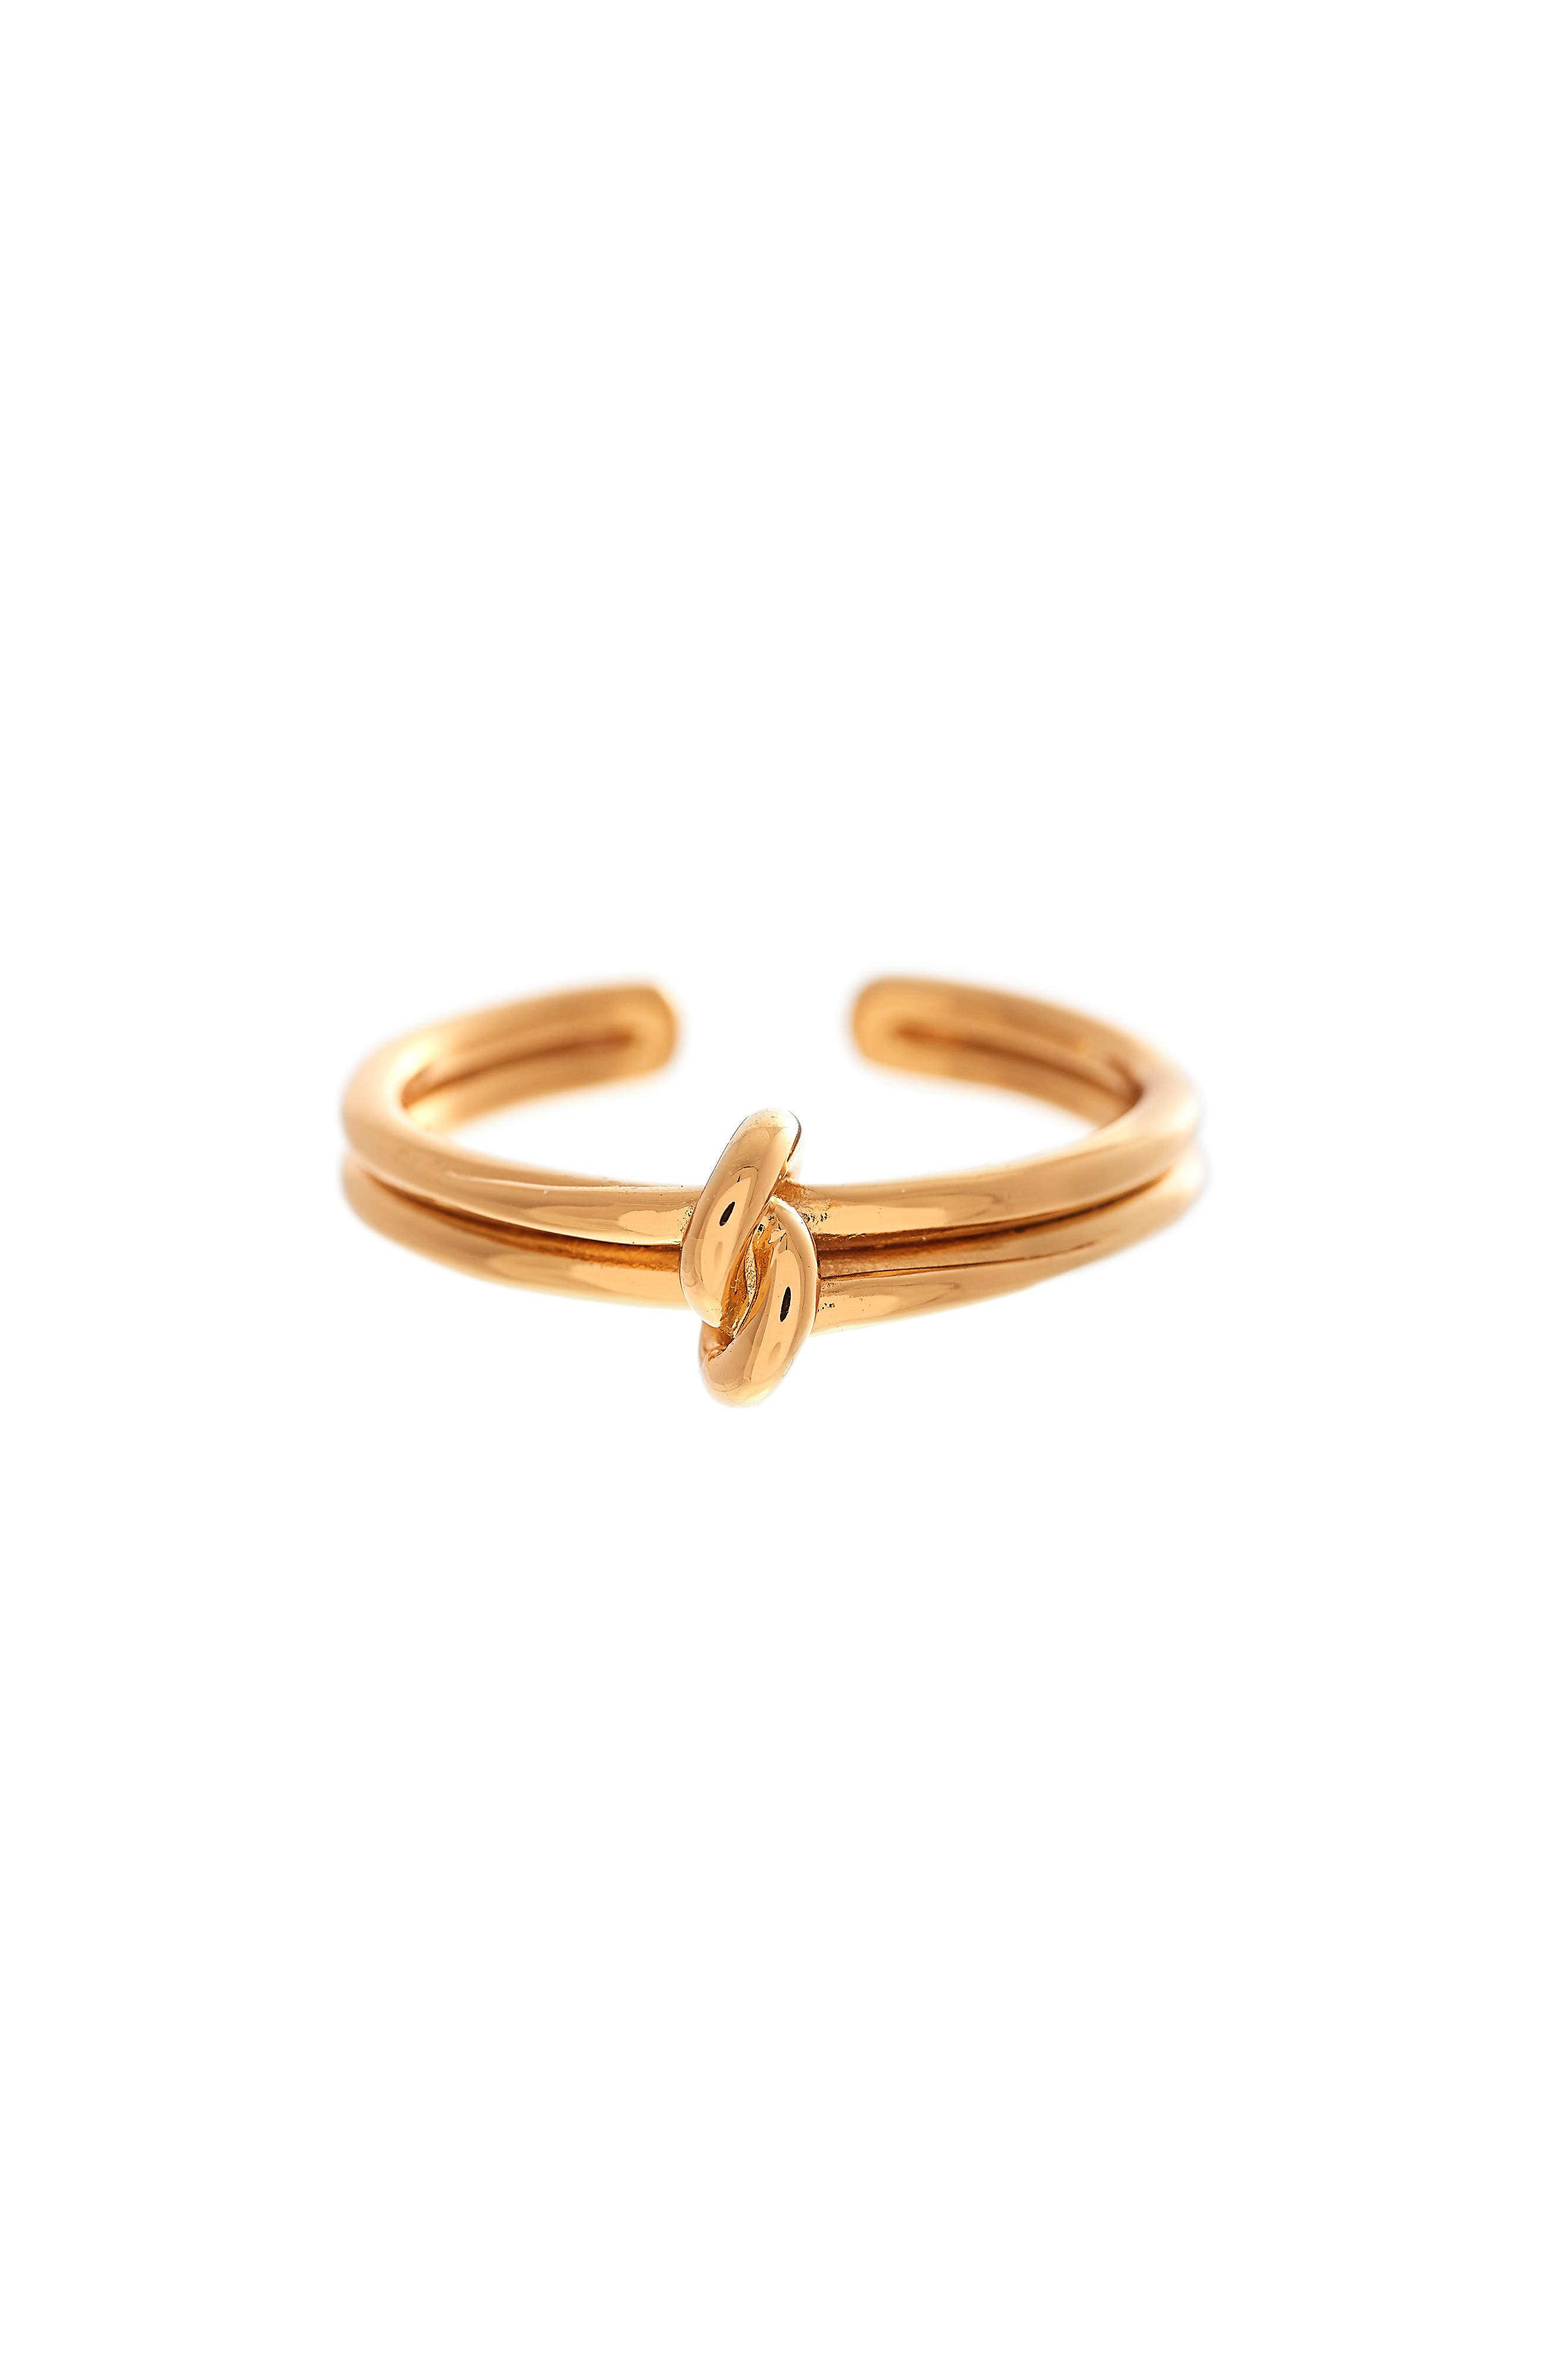 Forget Me Knot Ring,                             Main thumbnail 1, color,                             Gold